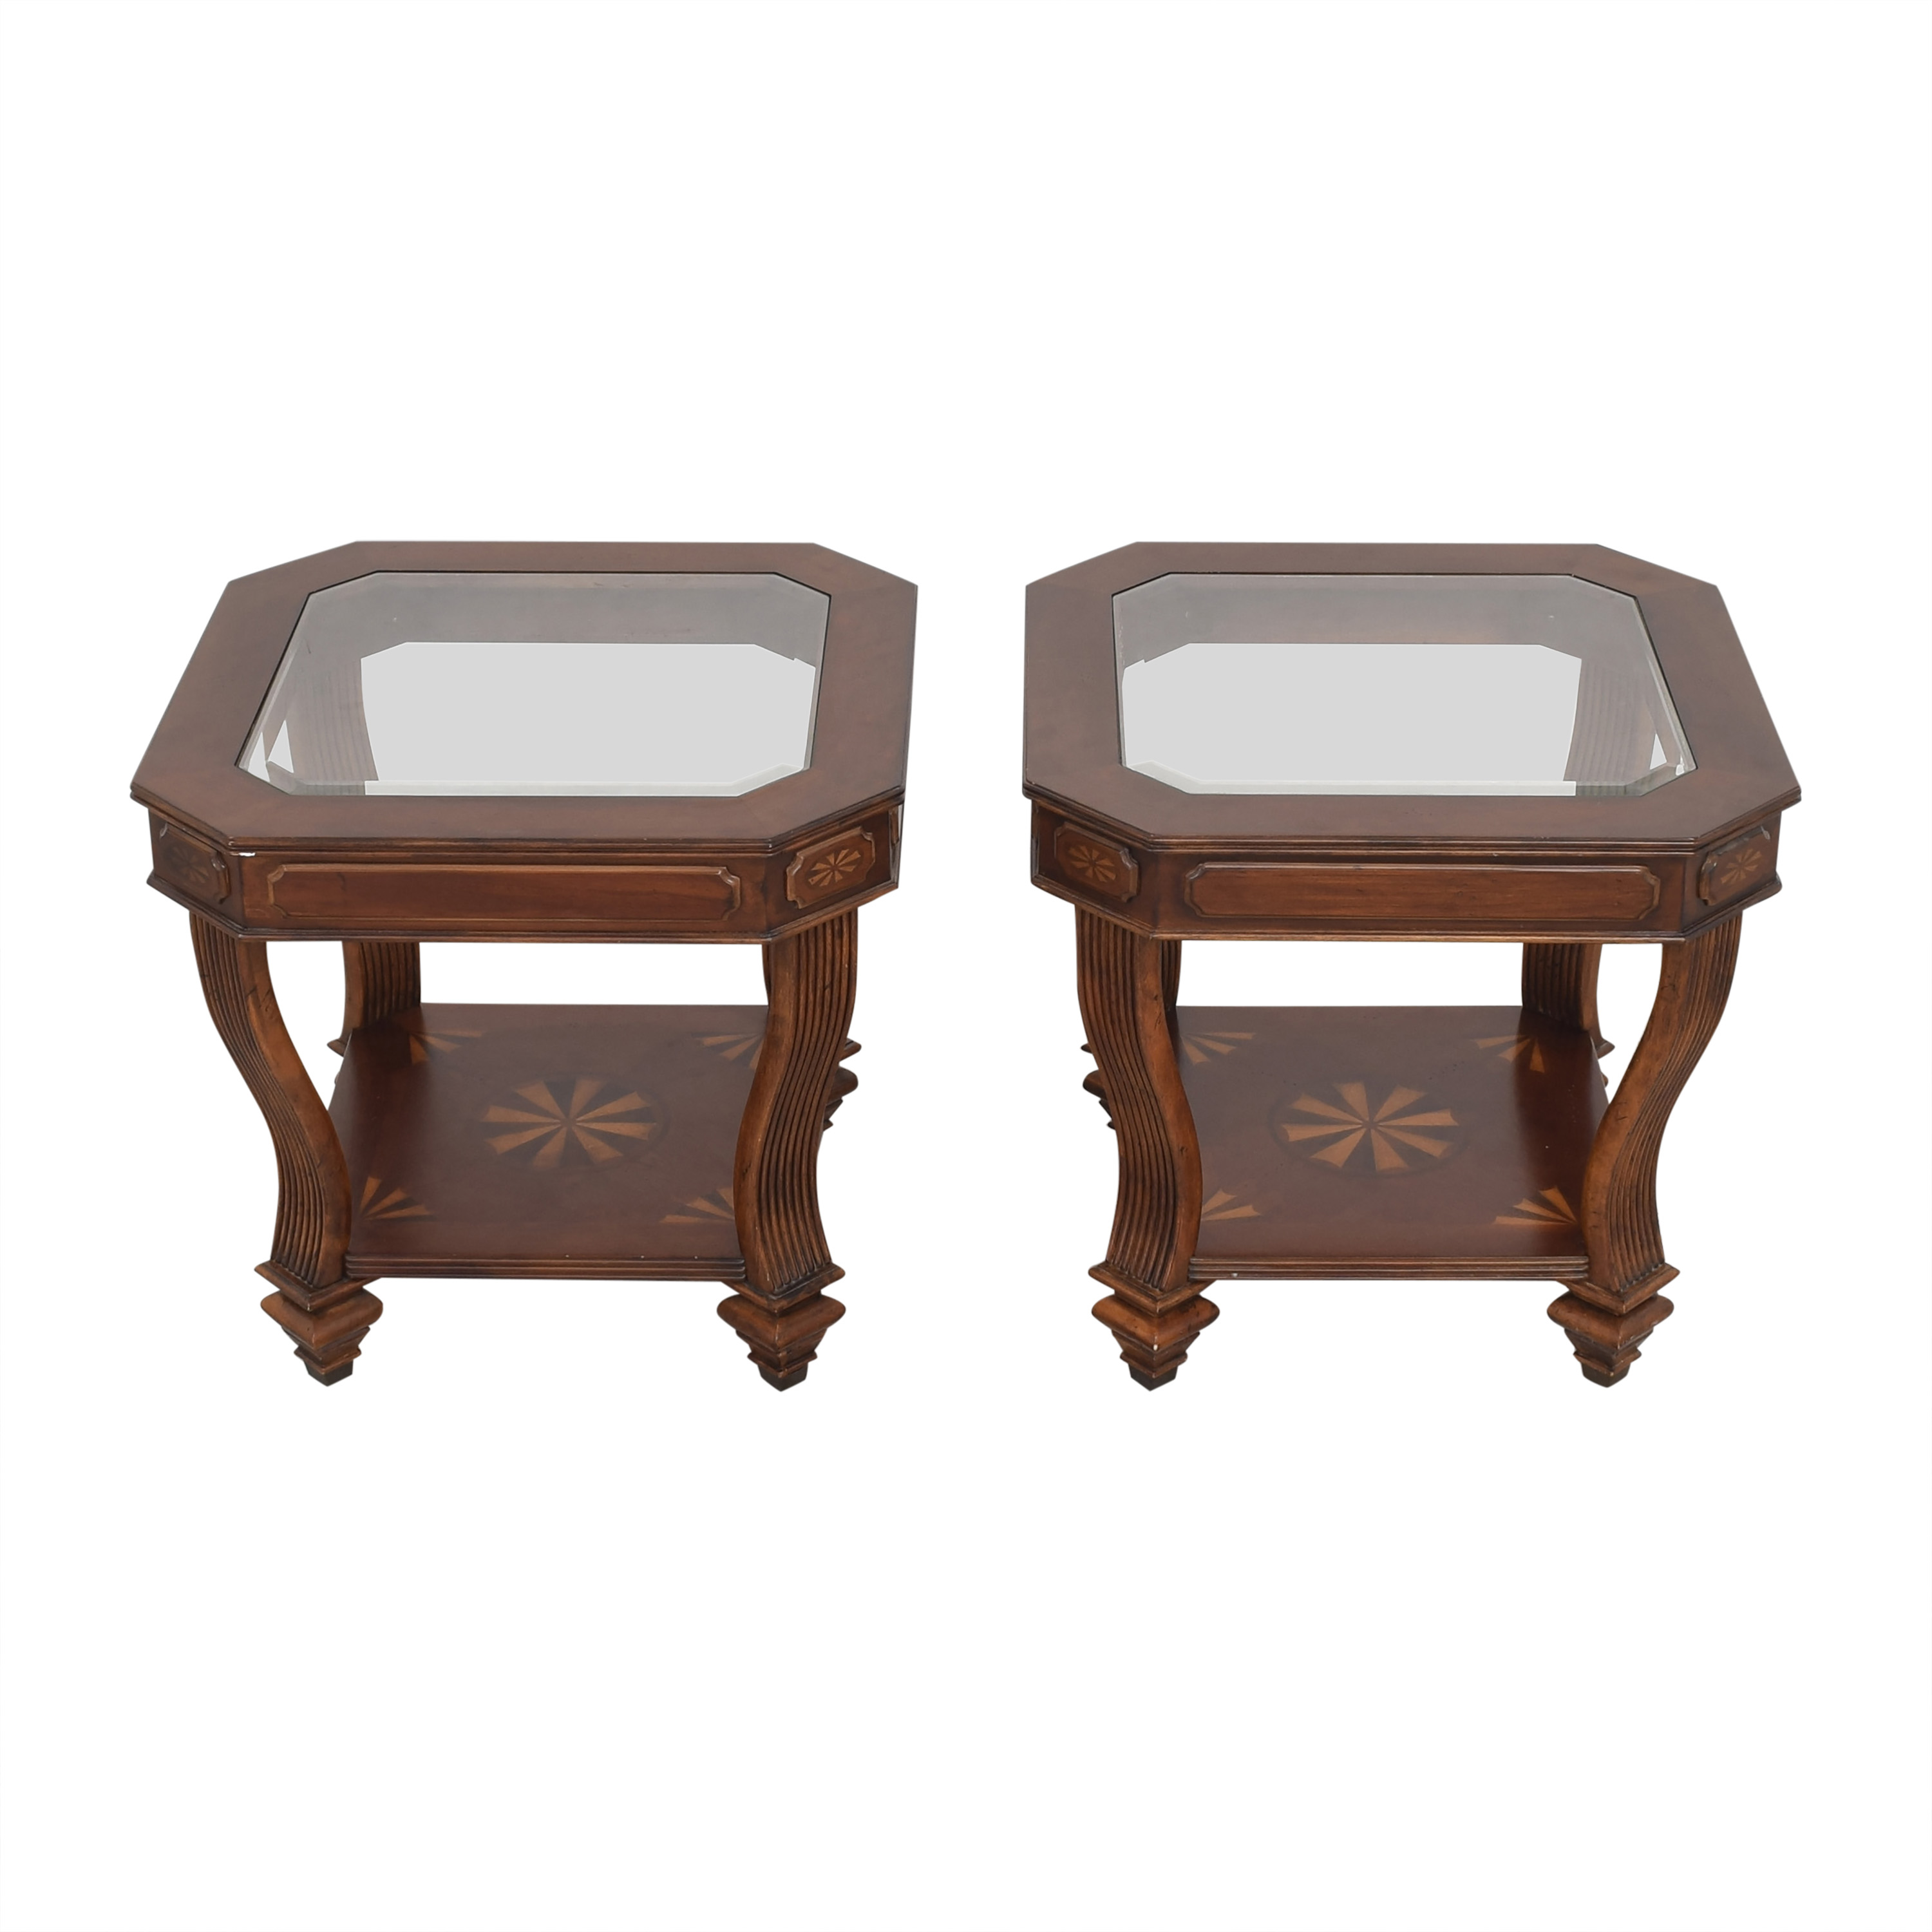 Tiered End Tables with Transparent Surfaces coupon